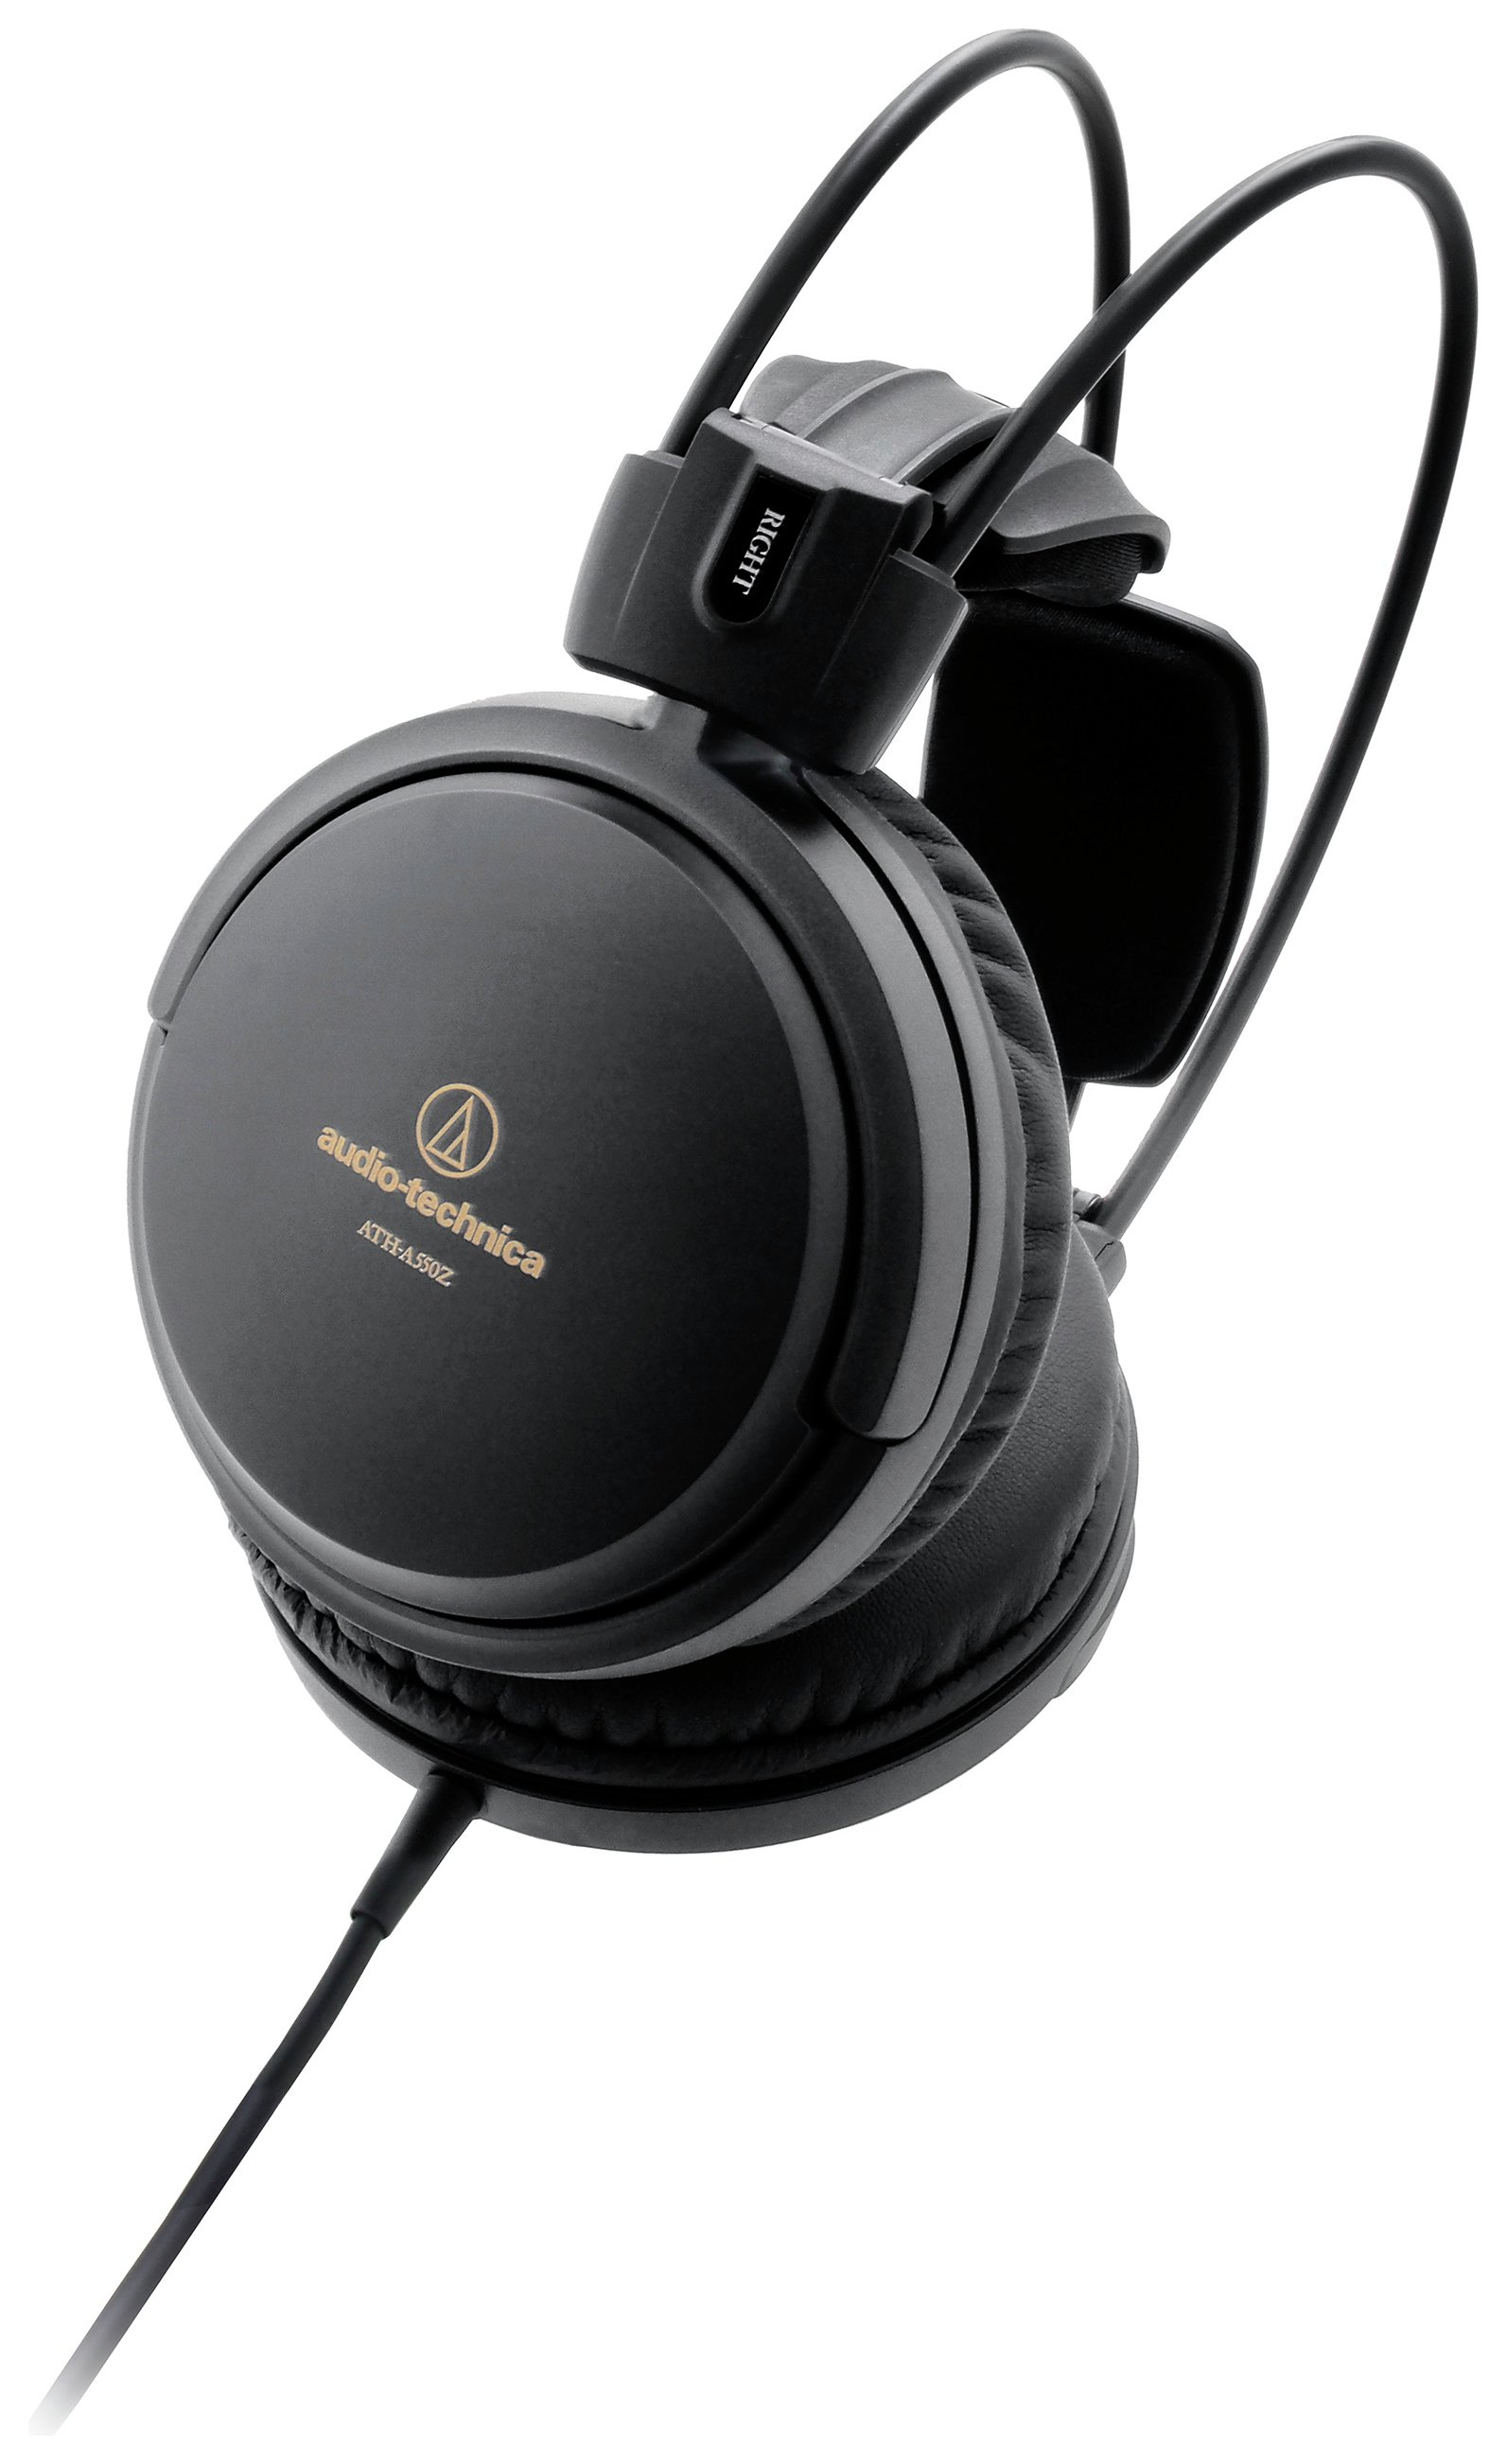 Image of Audio Technica ATH-A550Z On-Ear Headphones - Black.